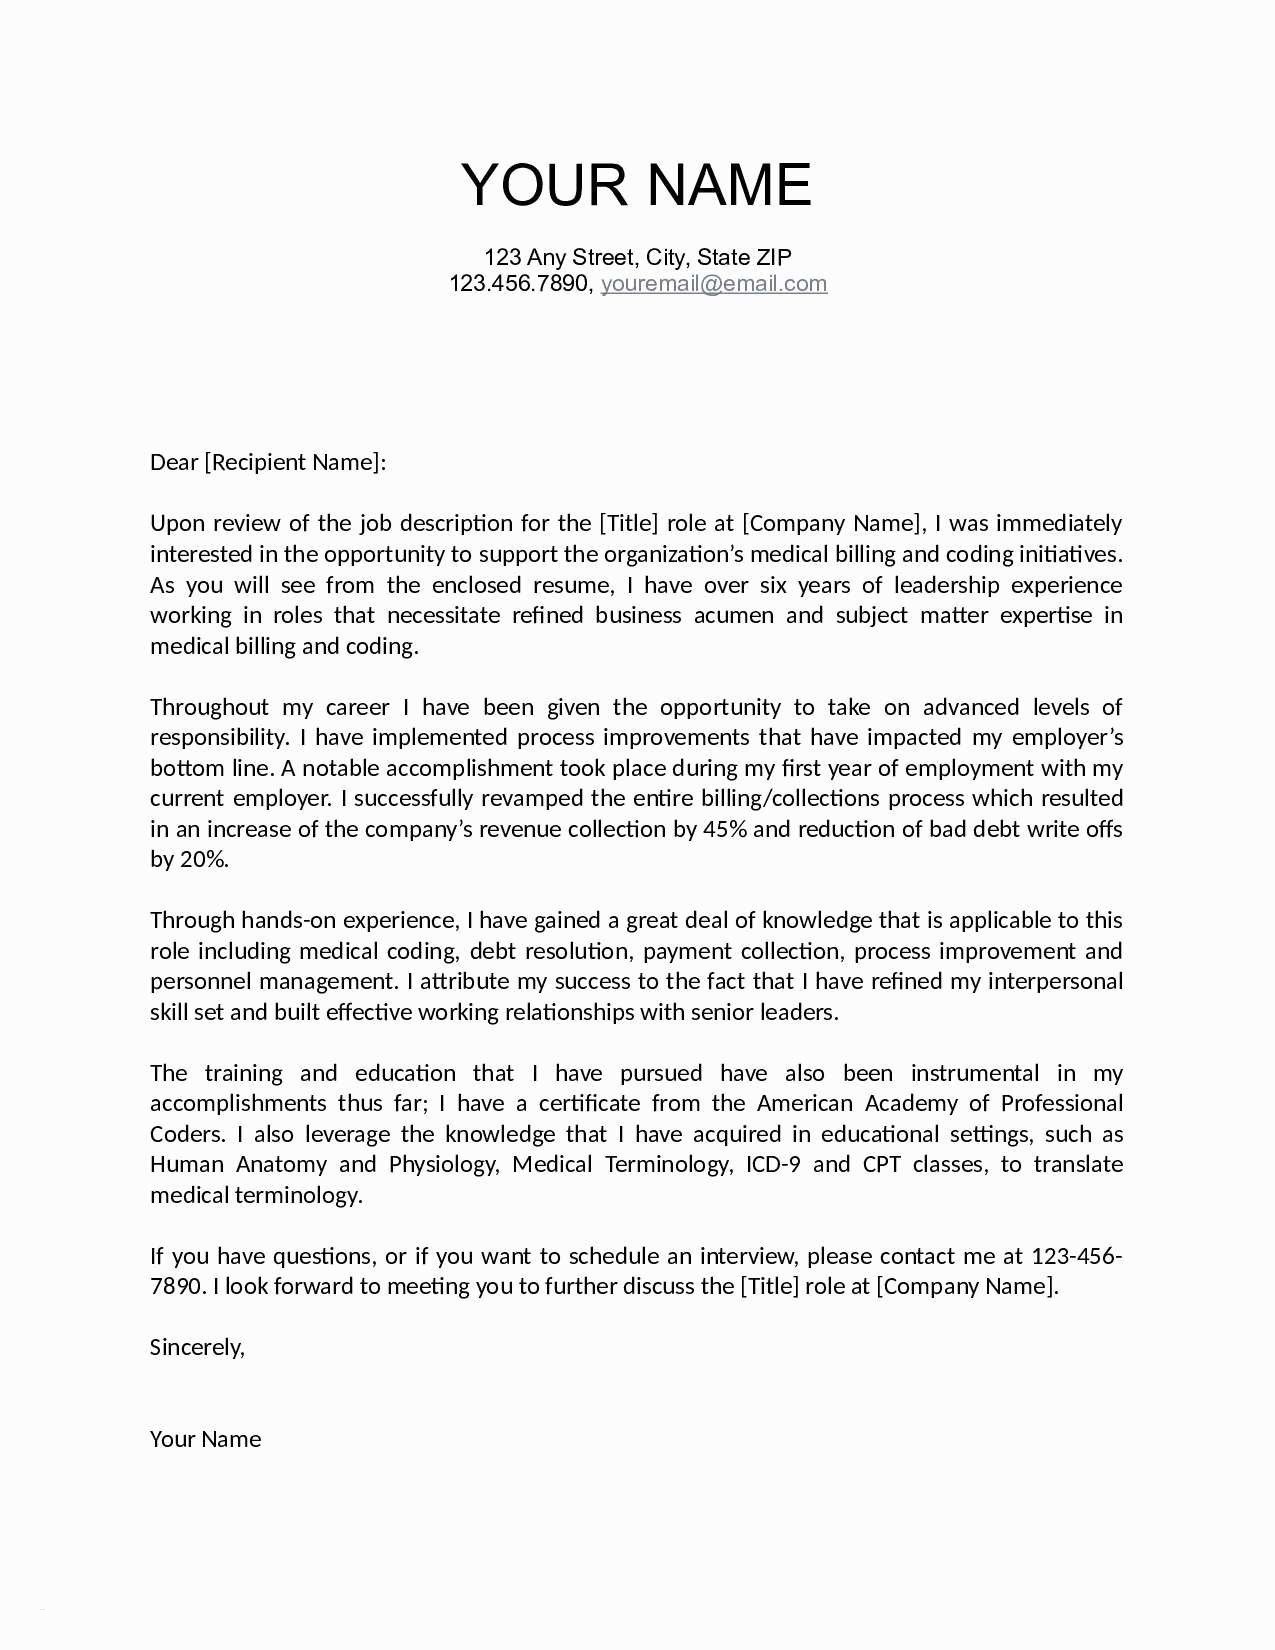 Business Thank You Letter Template - New Thank You Letter Business Template Tellmeladwp